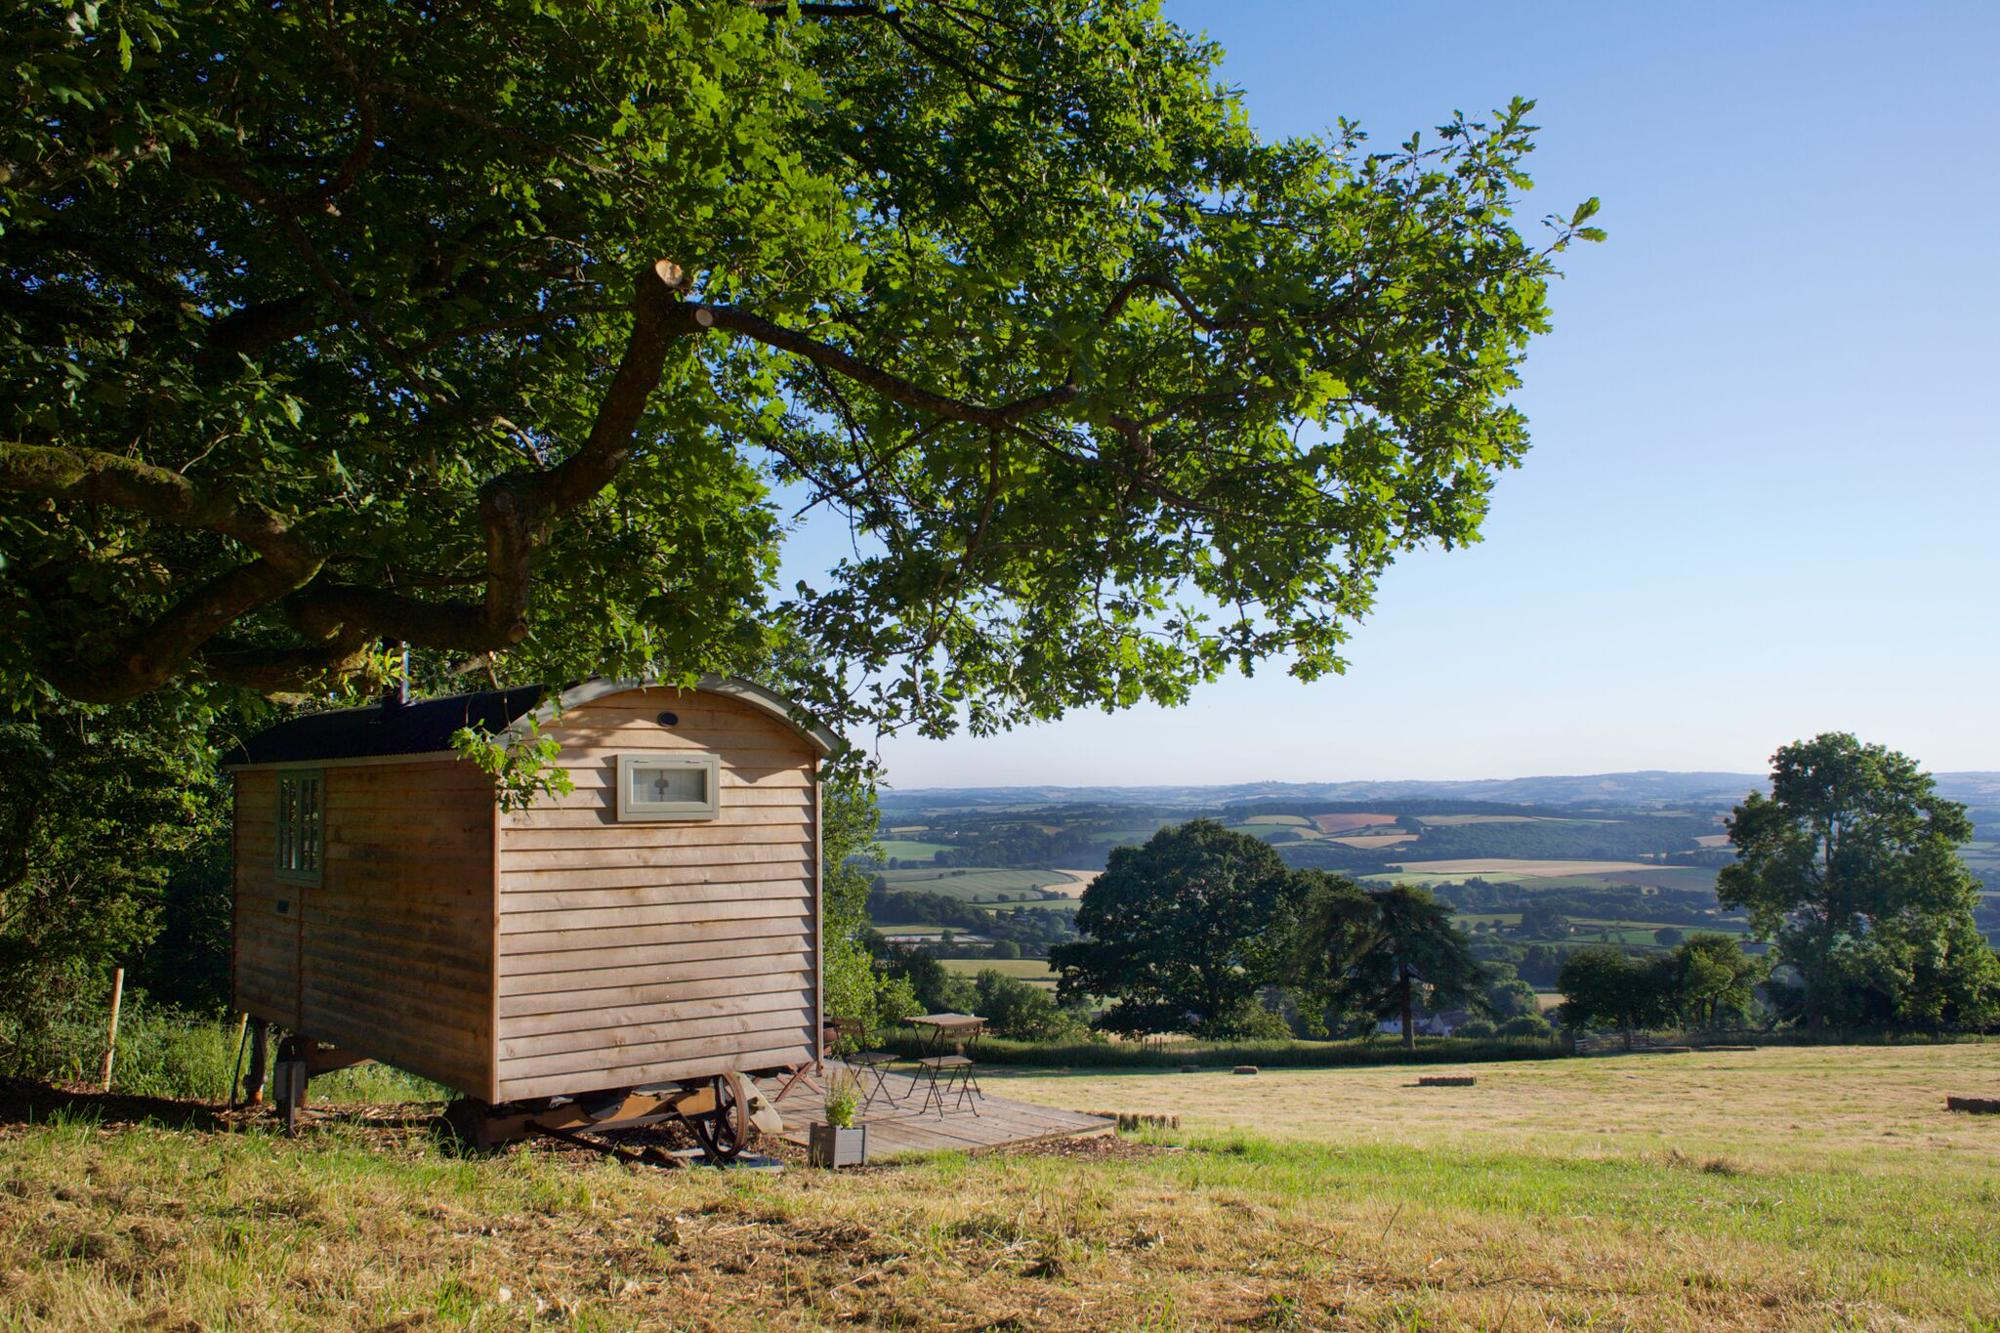 Campsites in The Quantock Hills holidays at Cool Places